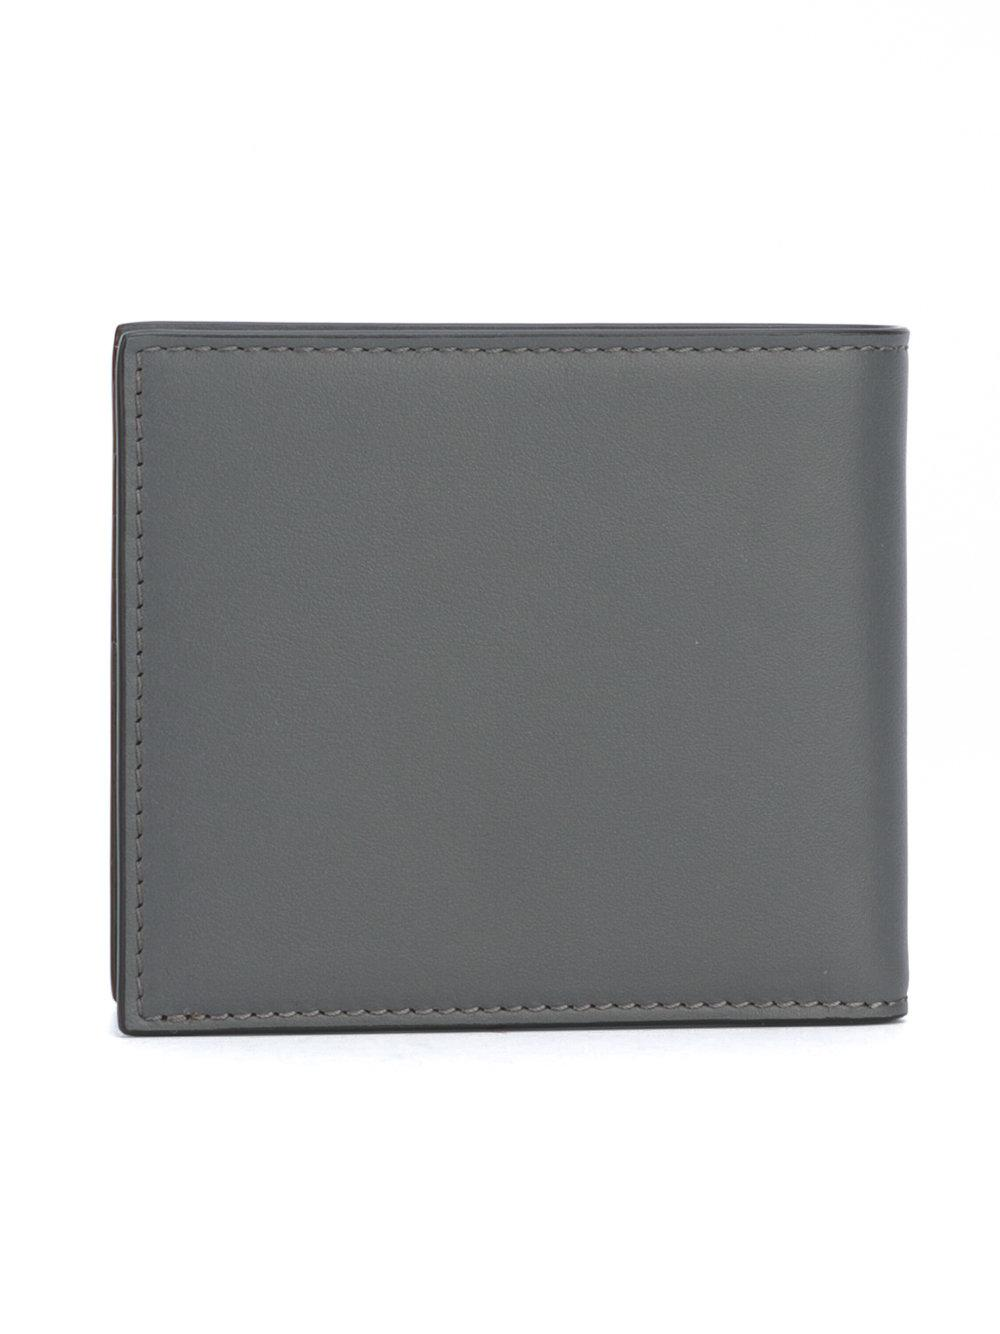 62ae9c138bfb Lyst - Fendi Selleria Wallet in Gray for Men